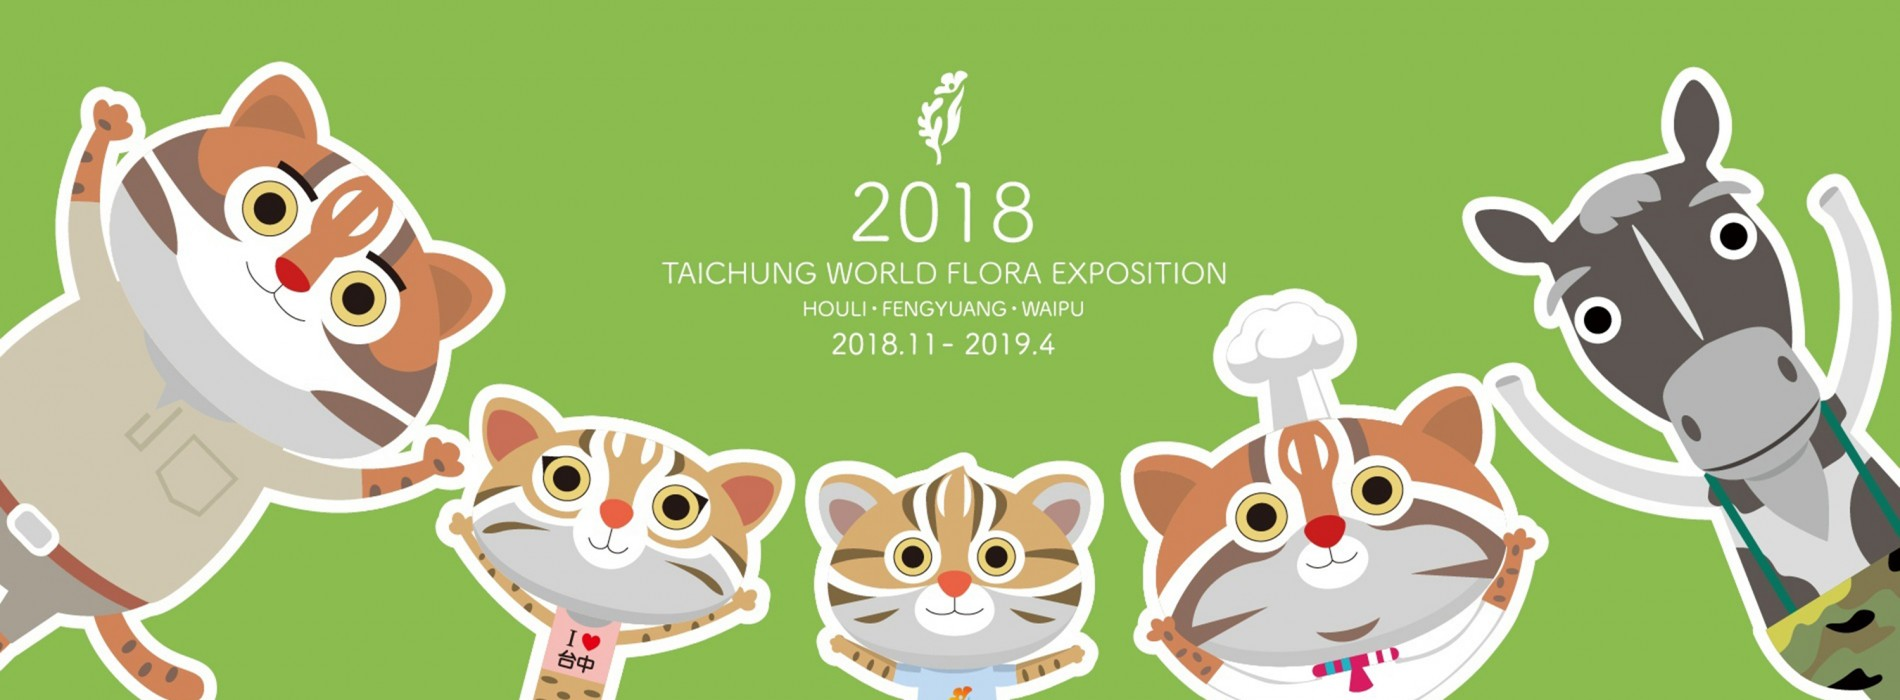 Taichung World Flora Expo 2018 to be held from 3 November